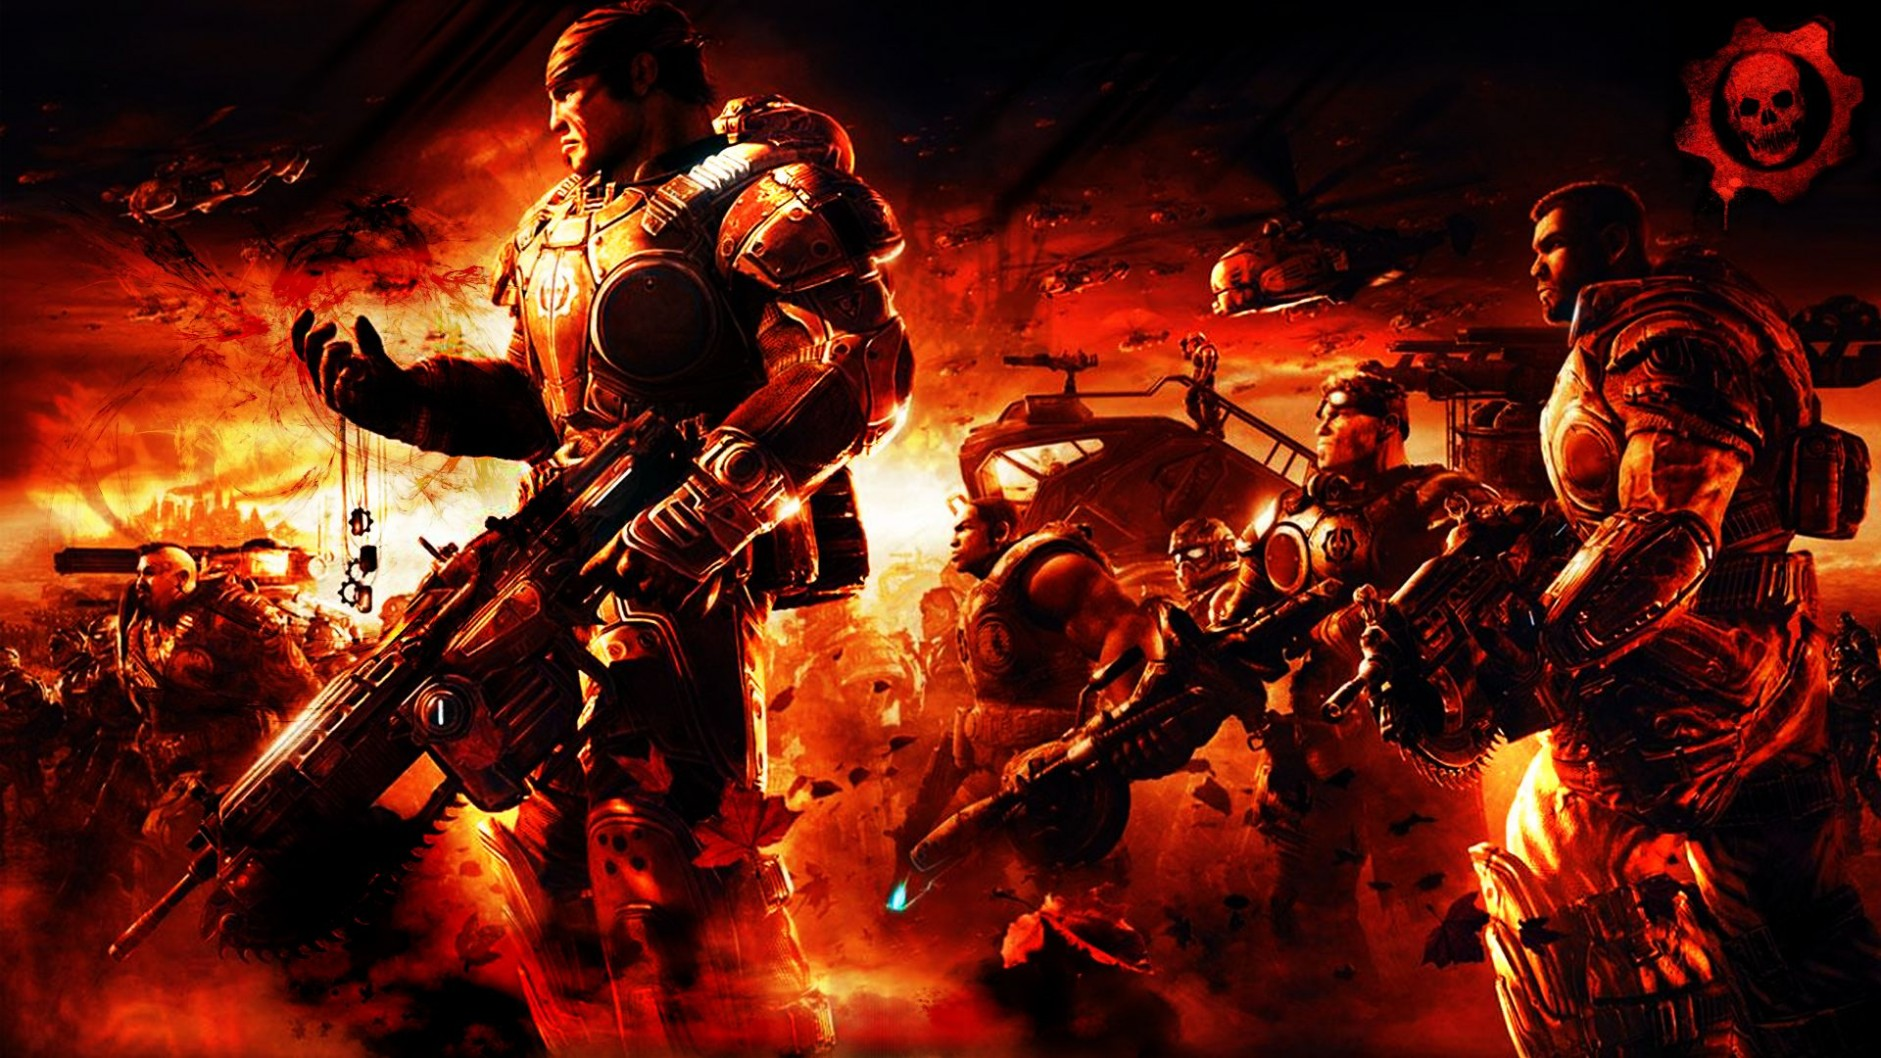 Free Gears Of War Game